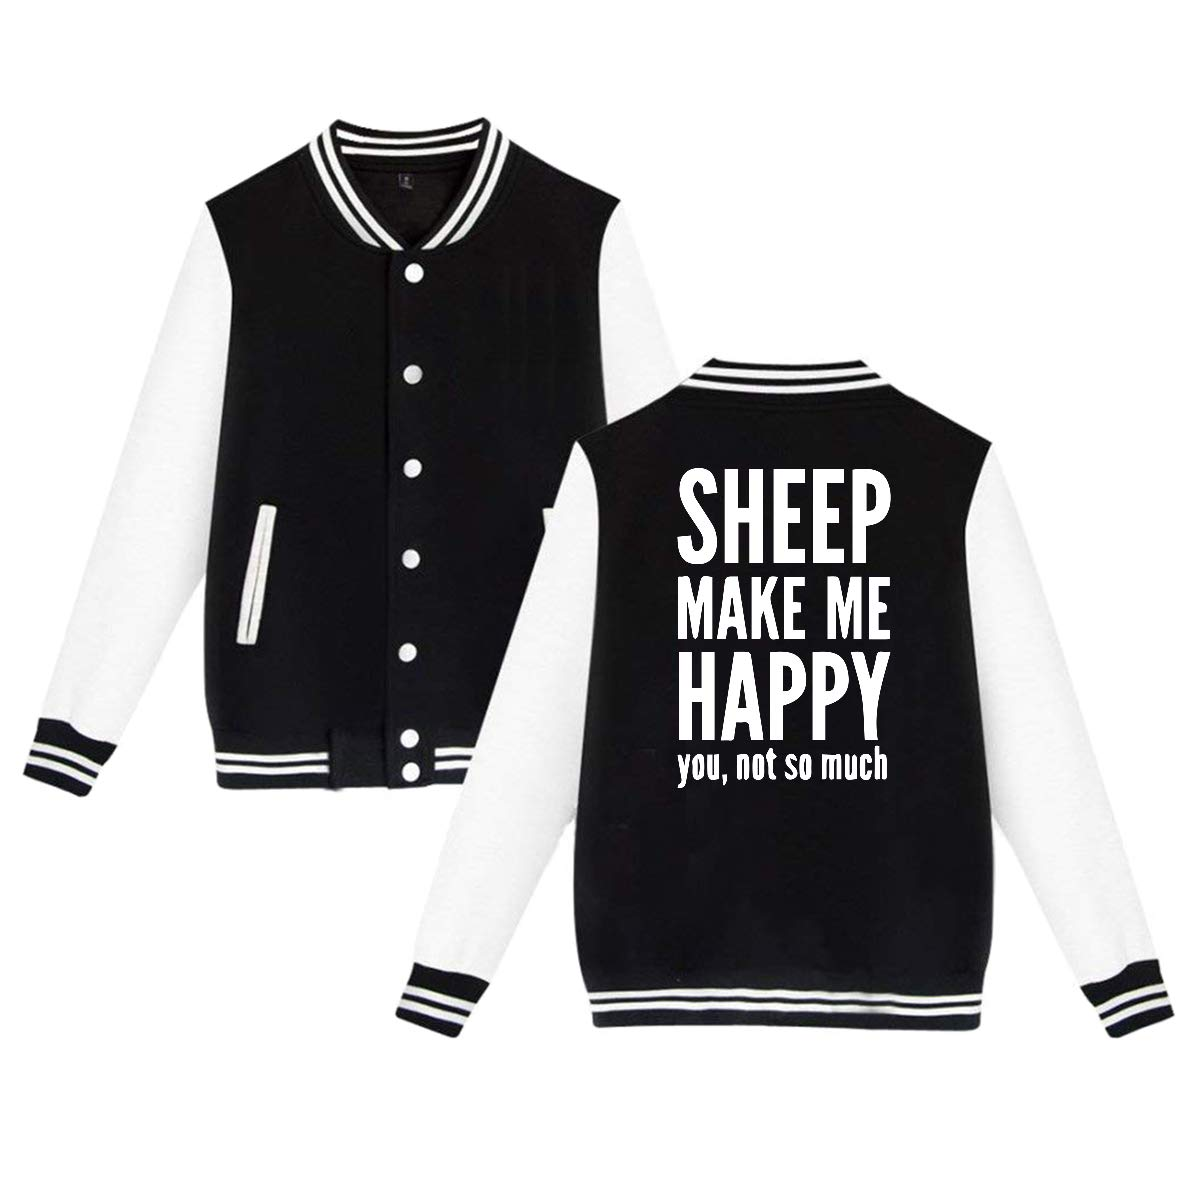 Back Print Unisex Baseball Jacket Uniform Sheep Makes Me Happy Boys Girls Hoodie Sweatshirt Sweater Coat